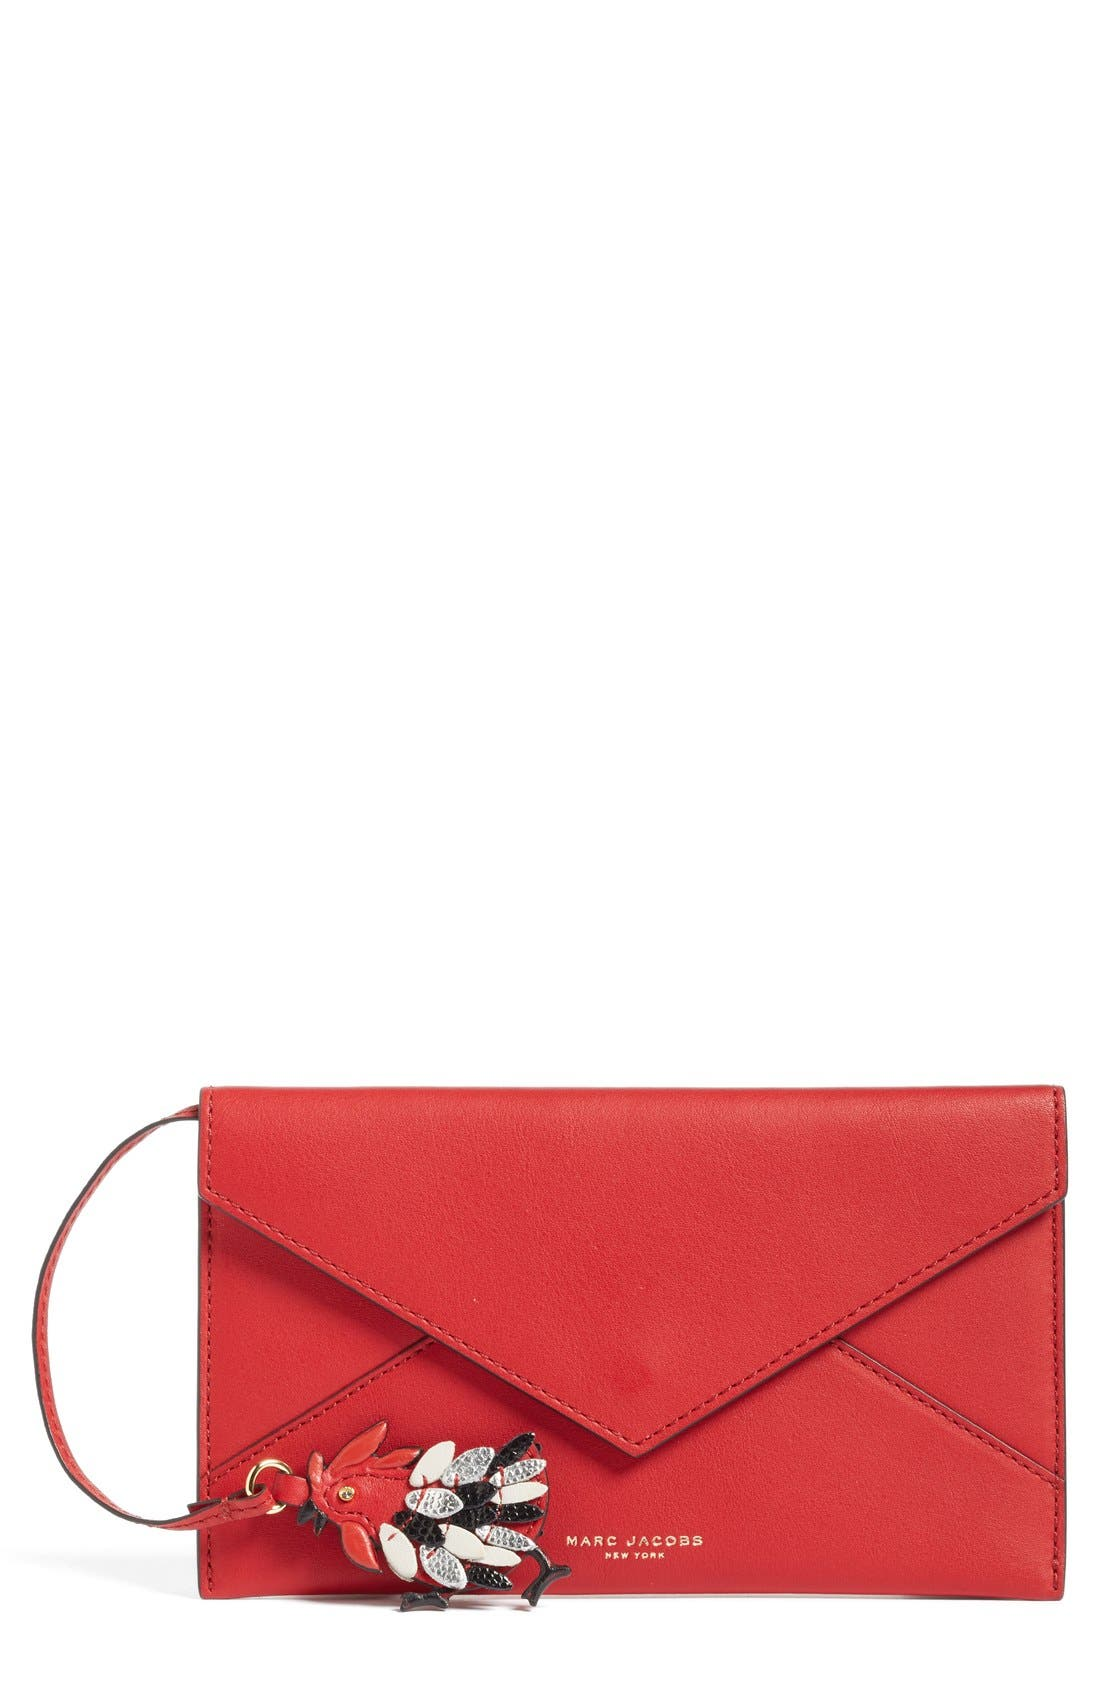 Rooster Envelope Clutch,                             Main thumbnail 1, color,                             647